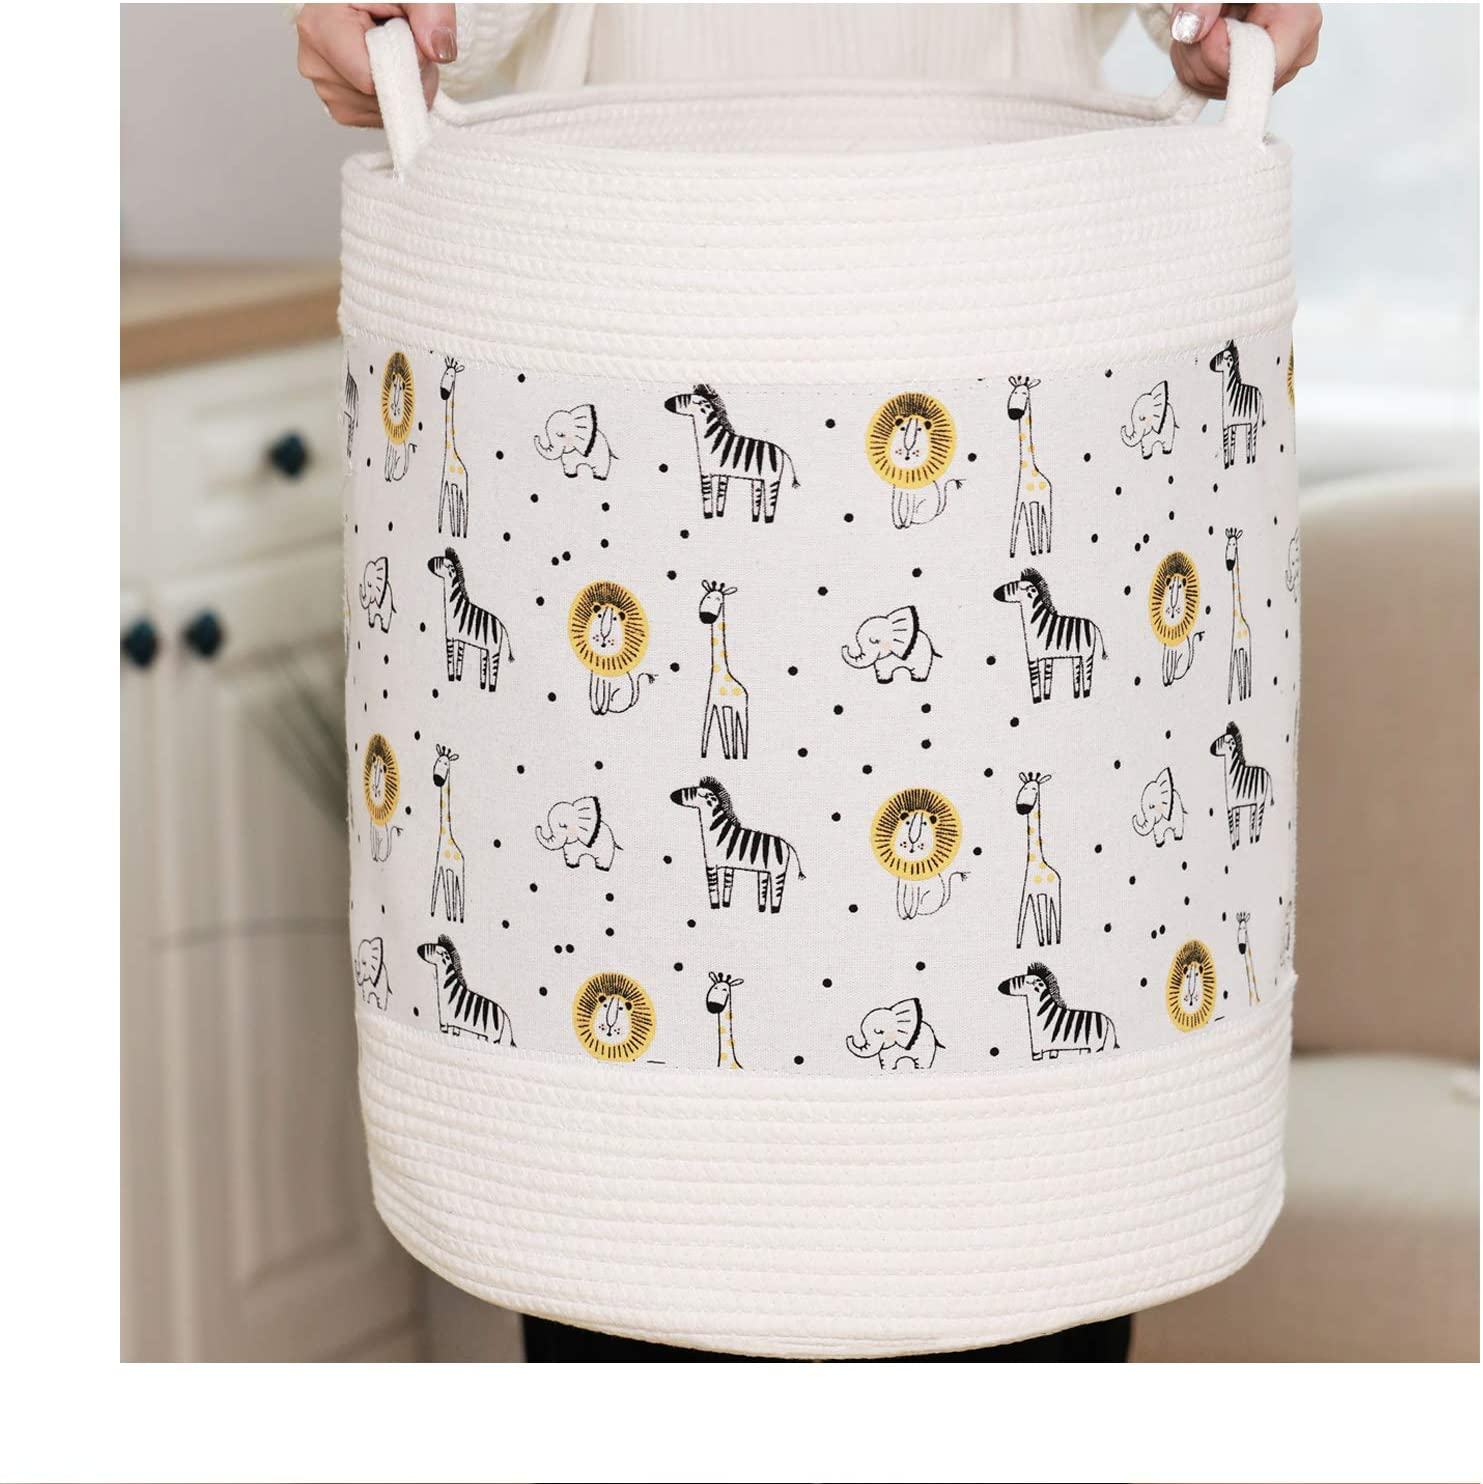 Loelurn Baby Laundry Baskets High order of Cotton Rope Super beauty product restock quality top with Linen A and Zoo